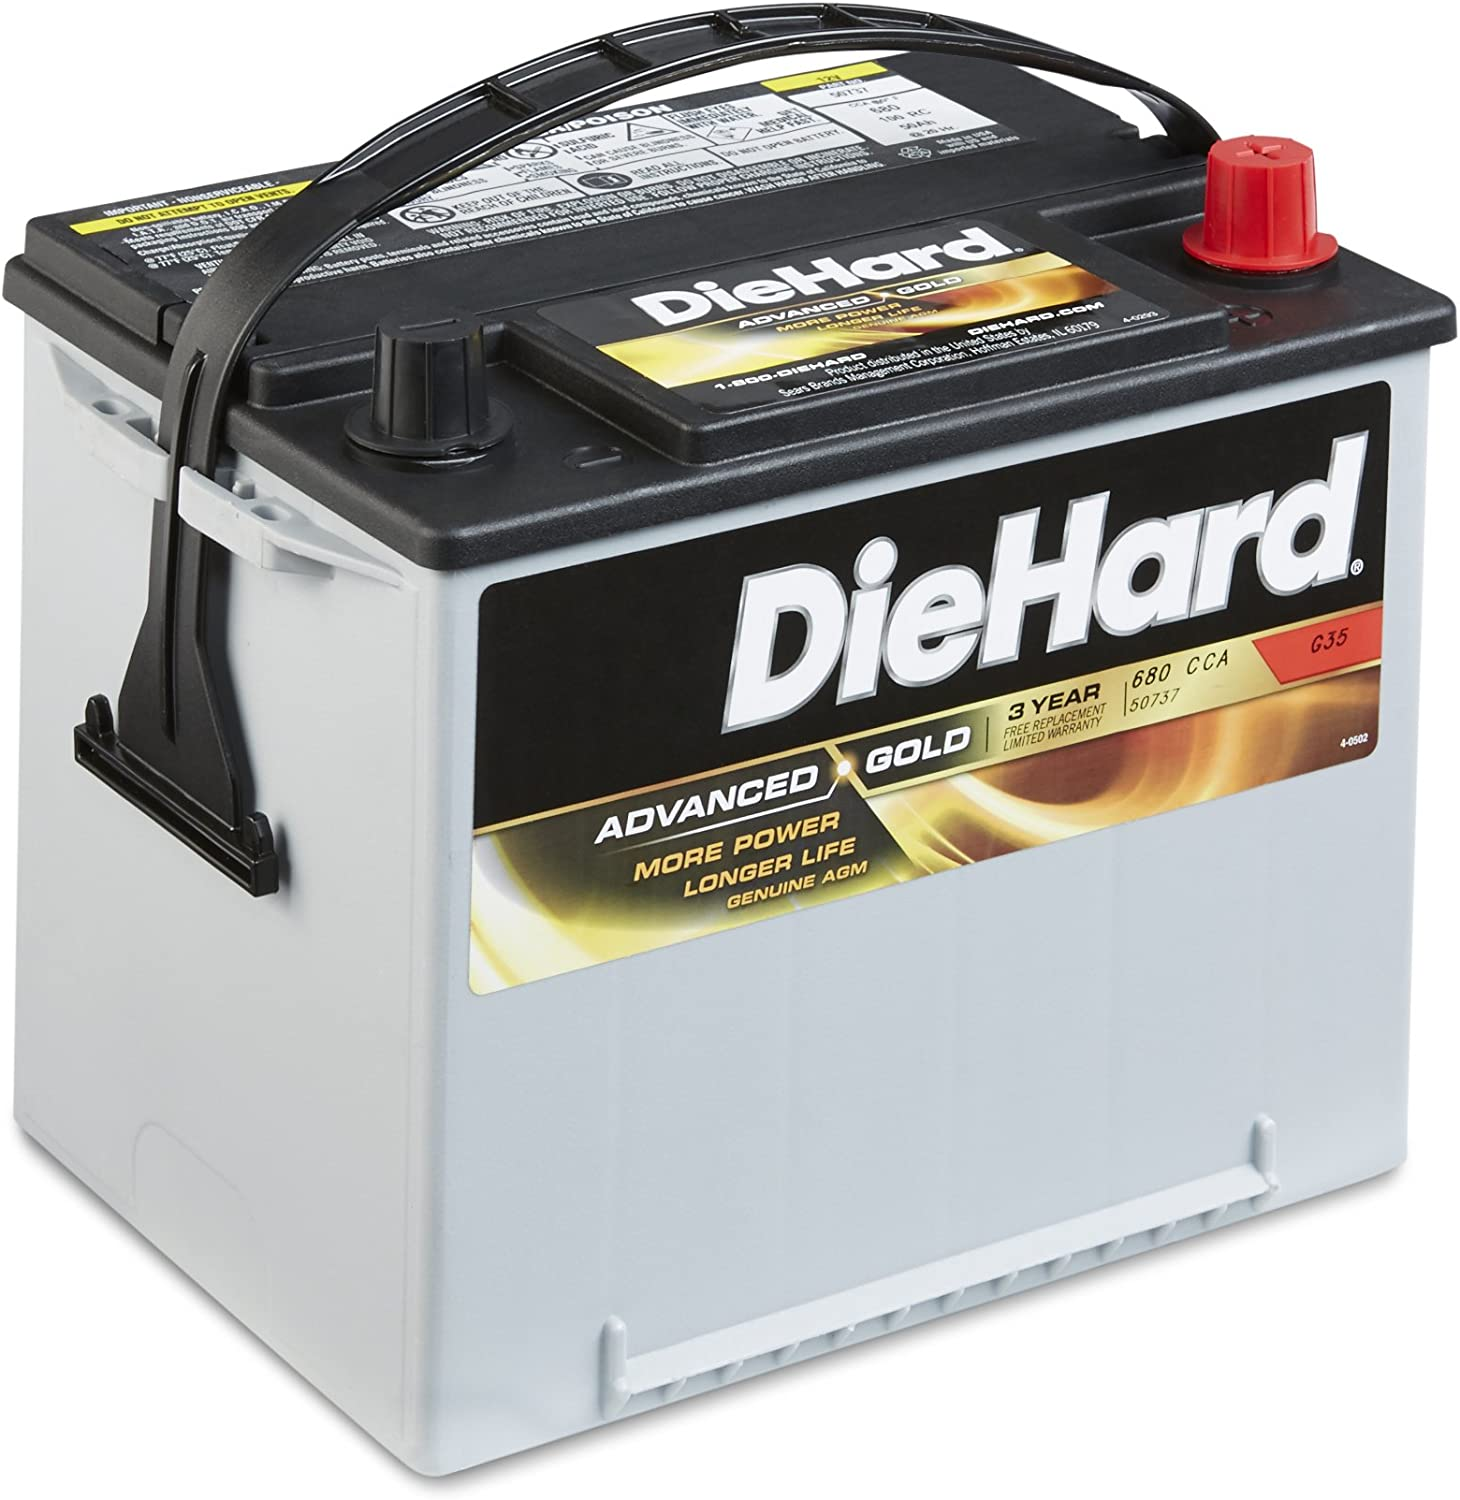 DieHard 38275 Group Advanced Gold AGM Battery GP35